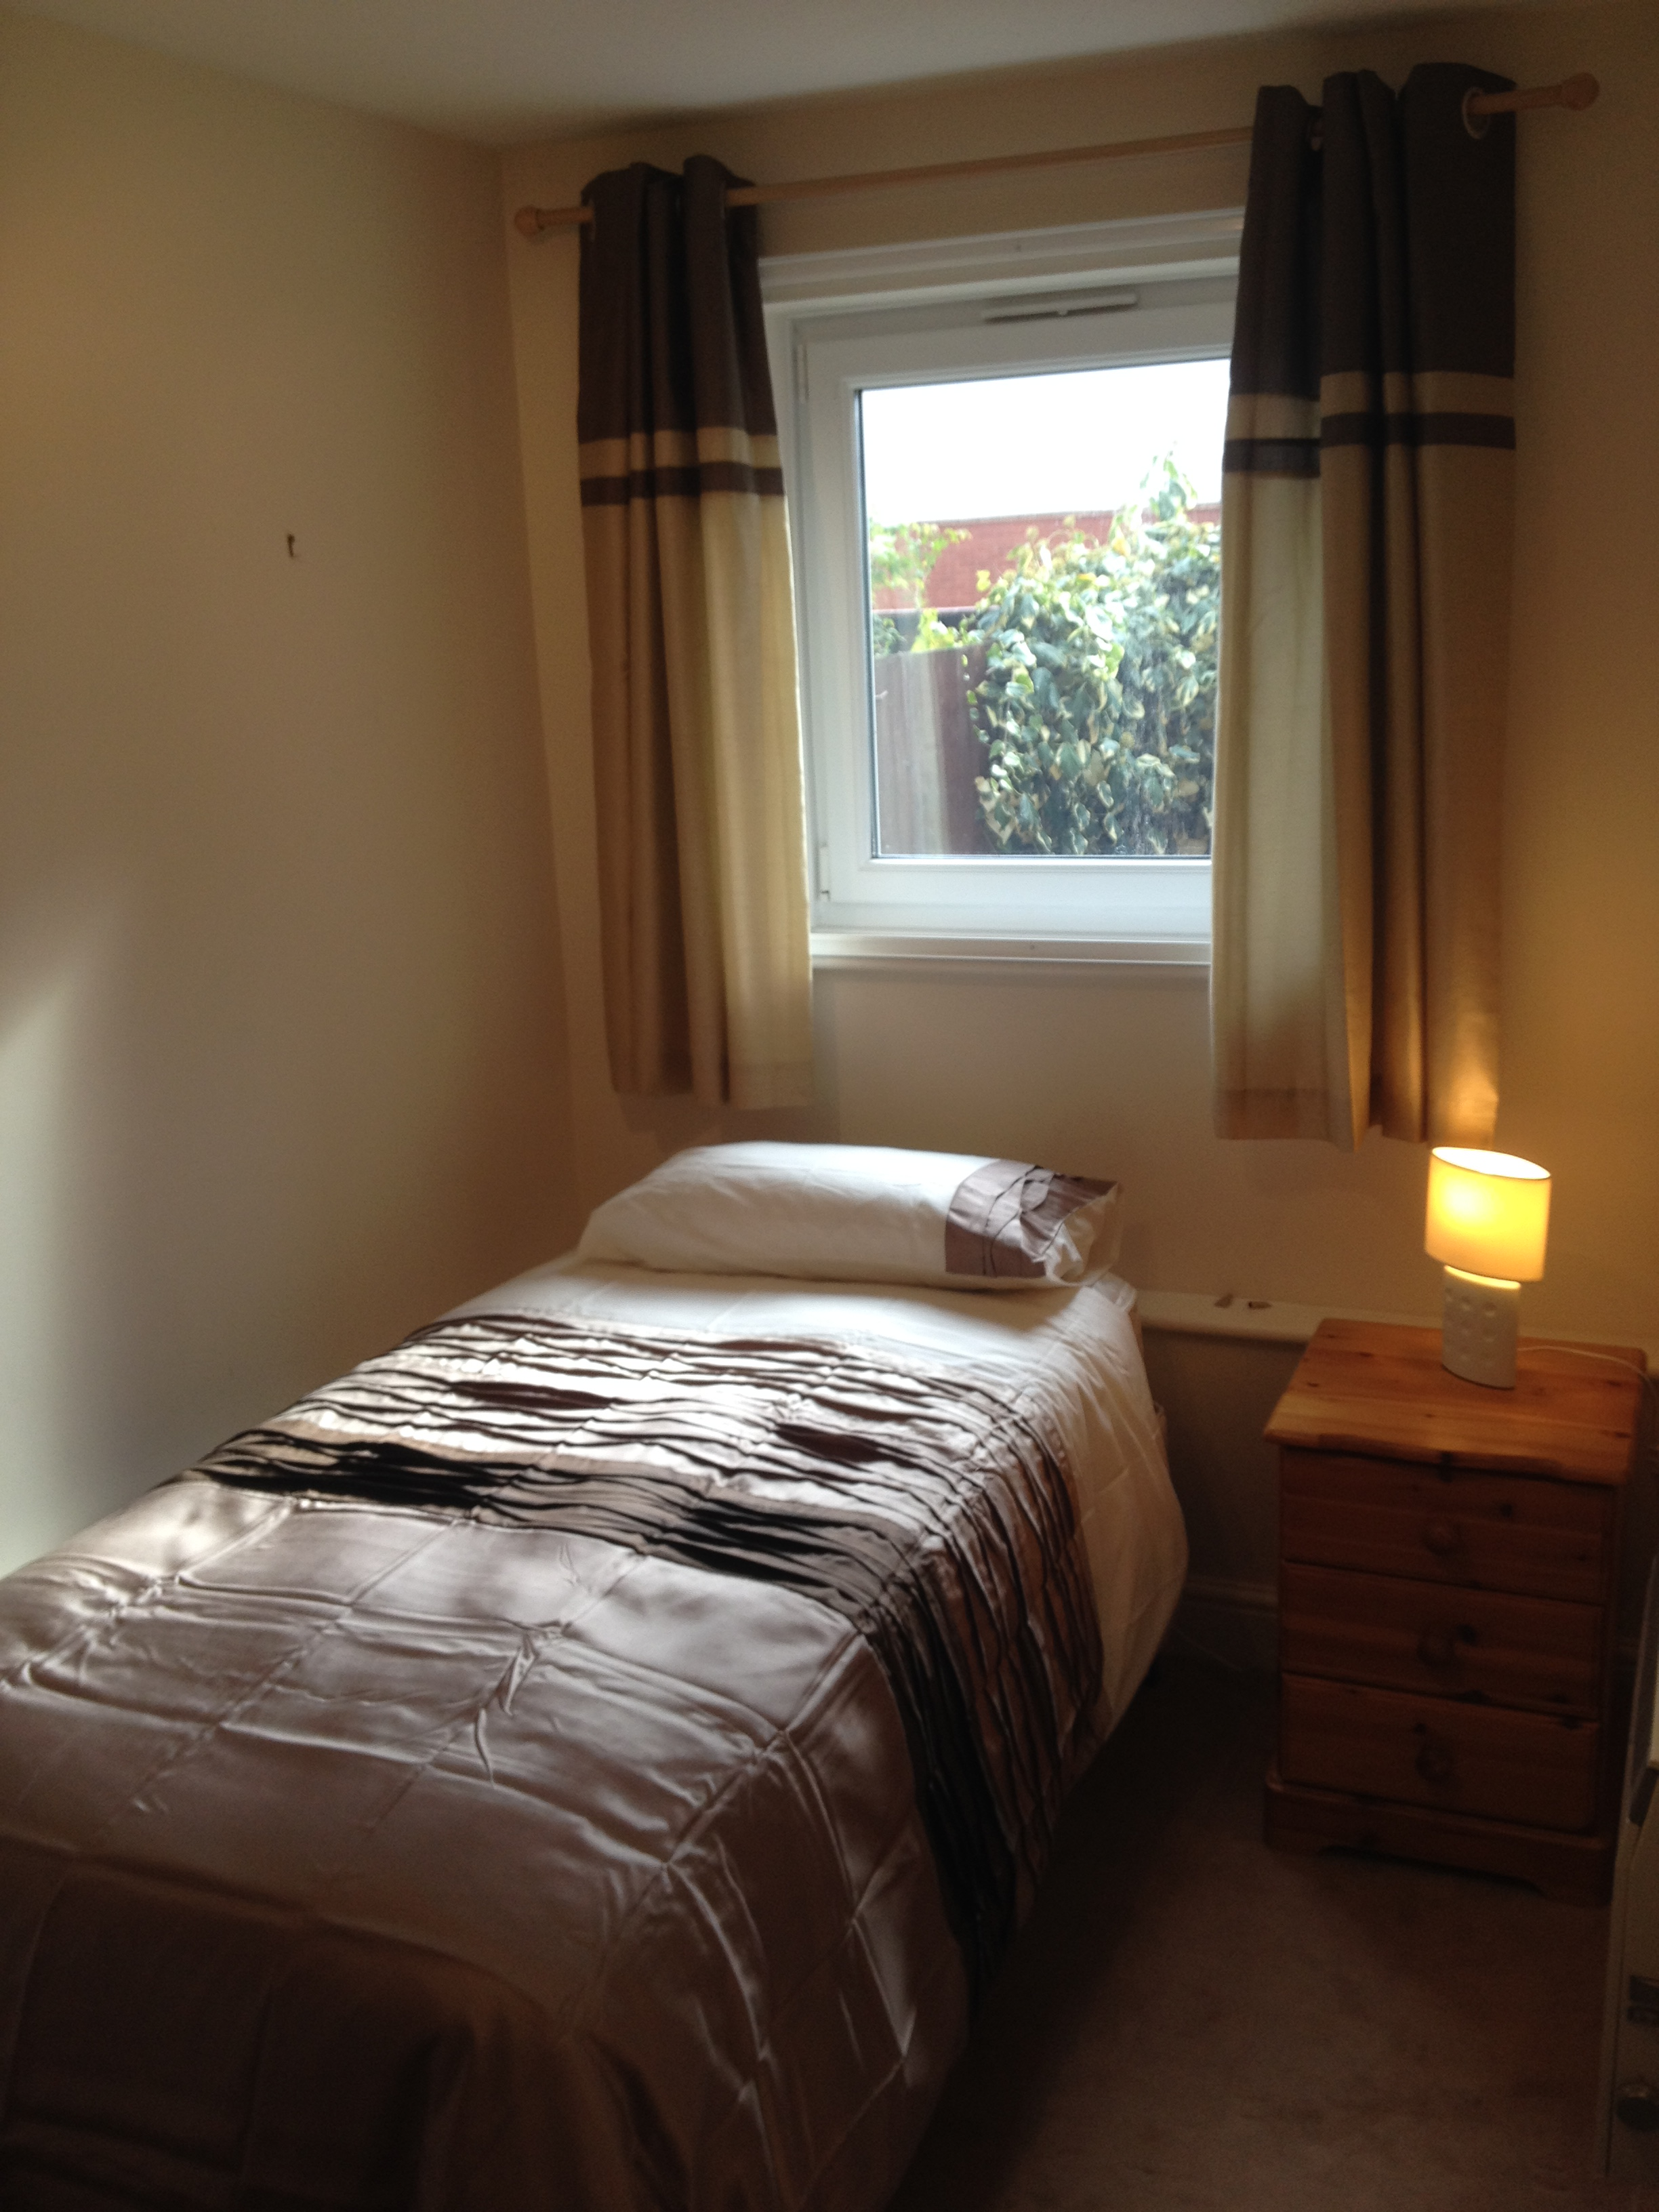 2 bedroom house for rent private landlord in slough. 2 bedroom furnished ground maisonette to rent on grove close, slough, berkshire, sl1 house for private landlord in slough m